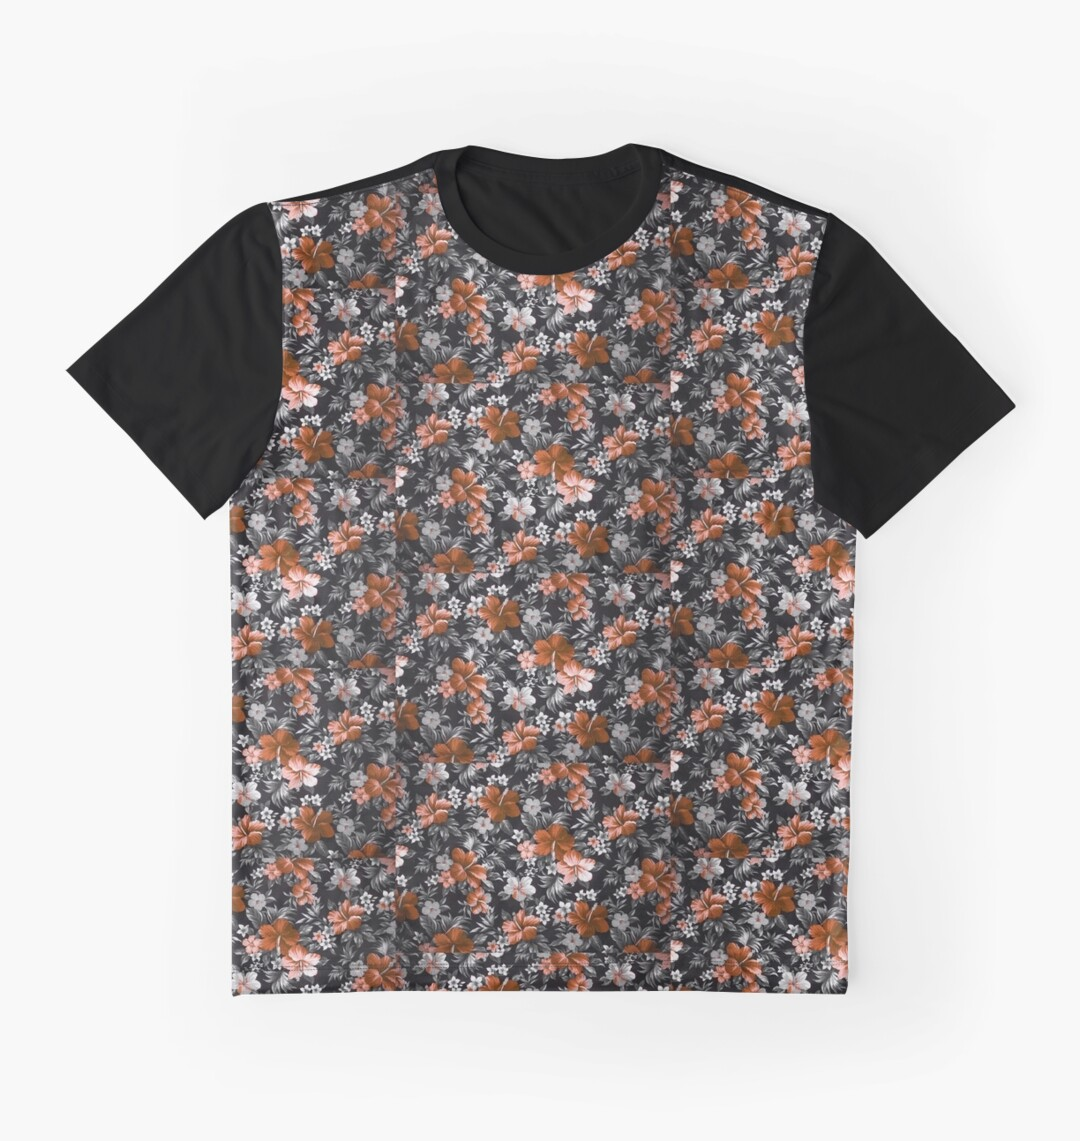 Hawaiian floral patter graphic tshirt graphic t shirts for Hawaiian graphic t shirts